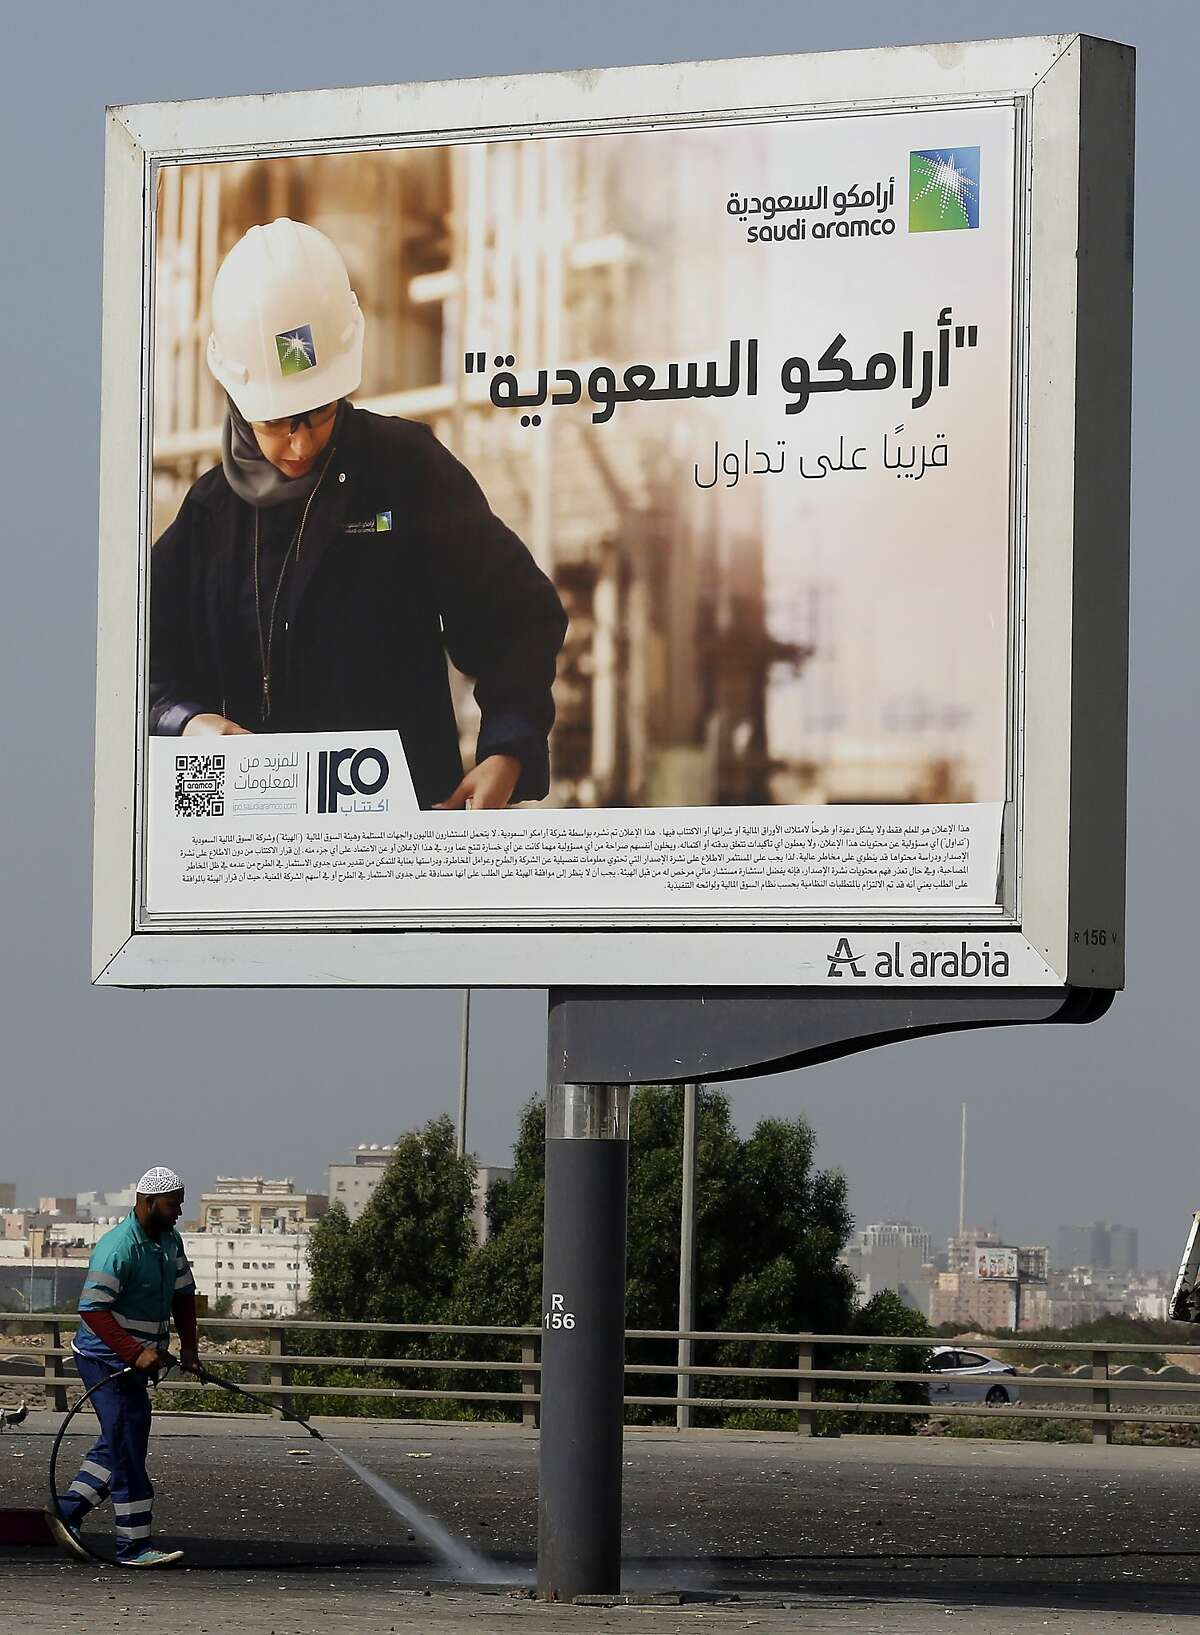 """A worker cleans under a billboard advertisement for Saudi Arabia's state-owned oil giant Aramco, with Arabic that reads, """"Saudi Aramco, soon on stock exchange,"""" in Jiddah, Saudi Arabia. (AP Photo/Amr Nabil)"""